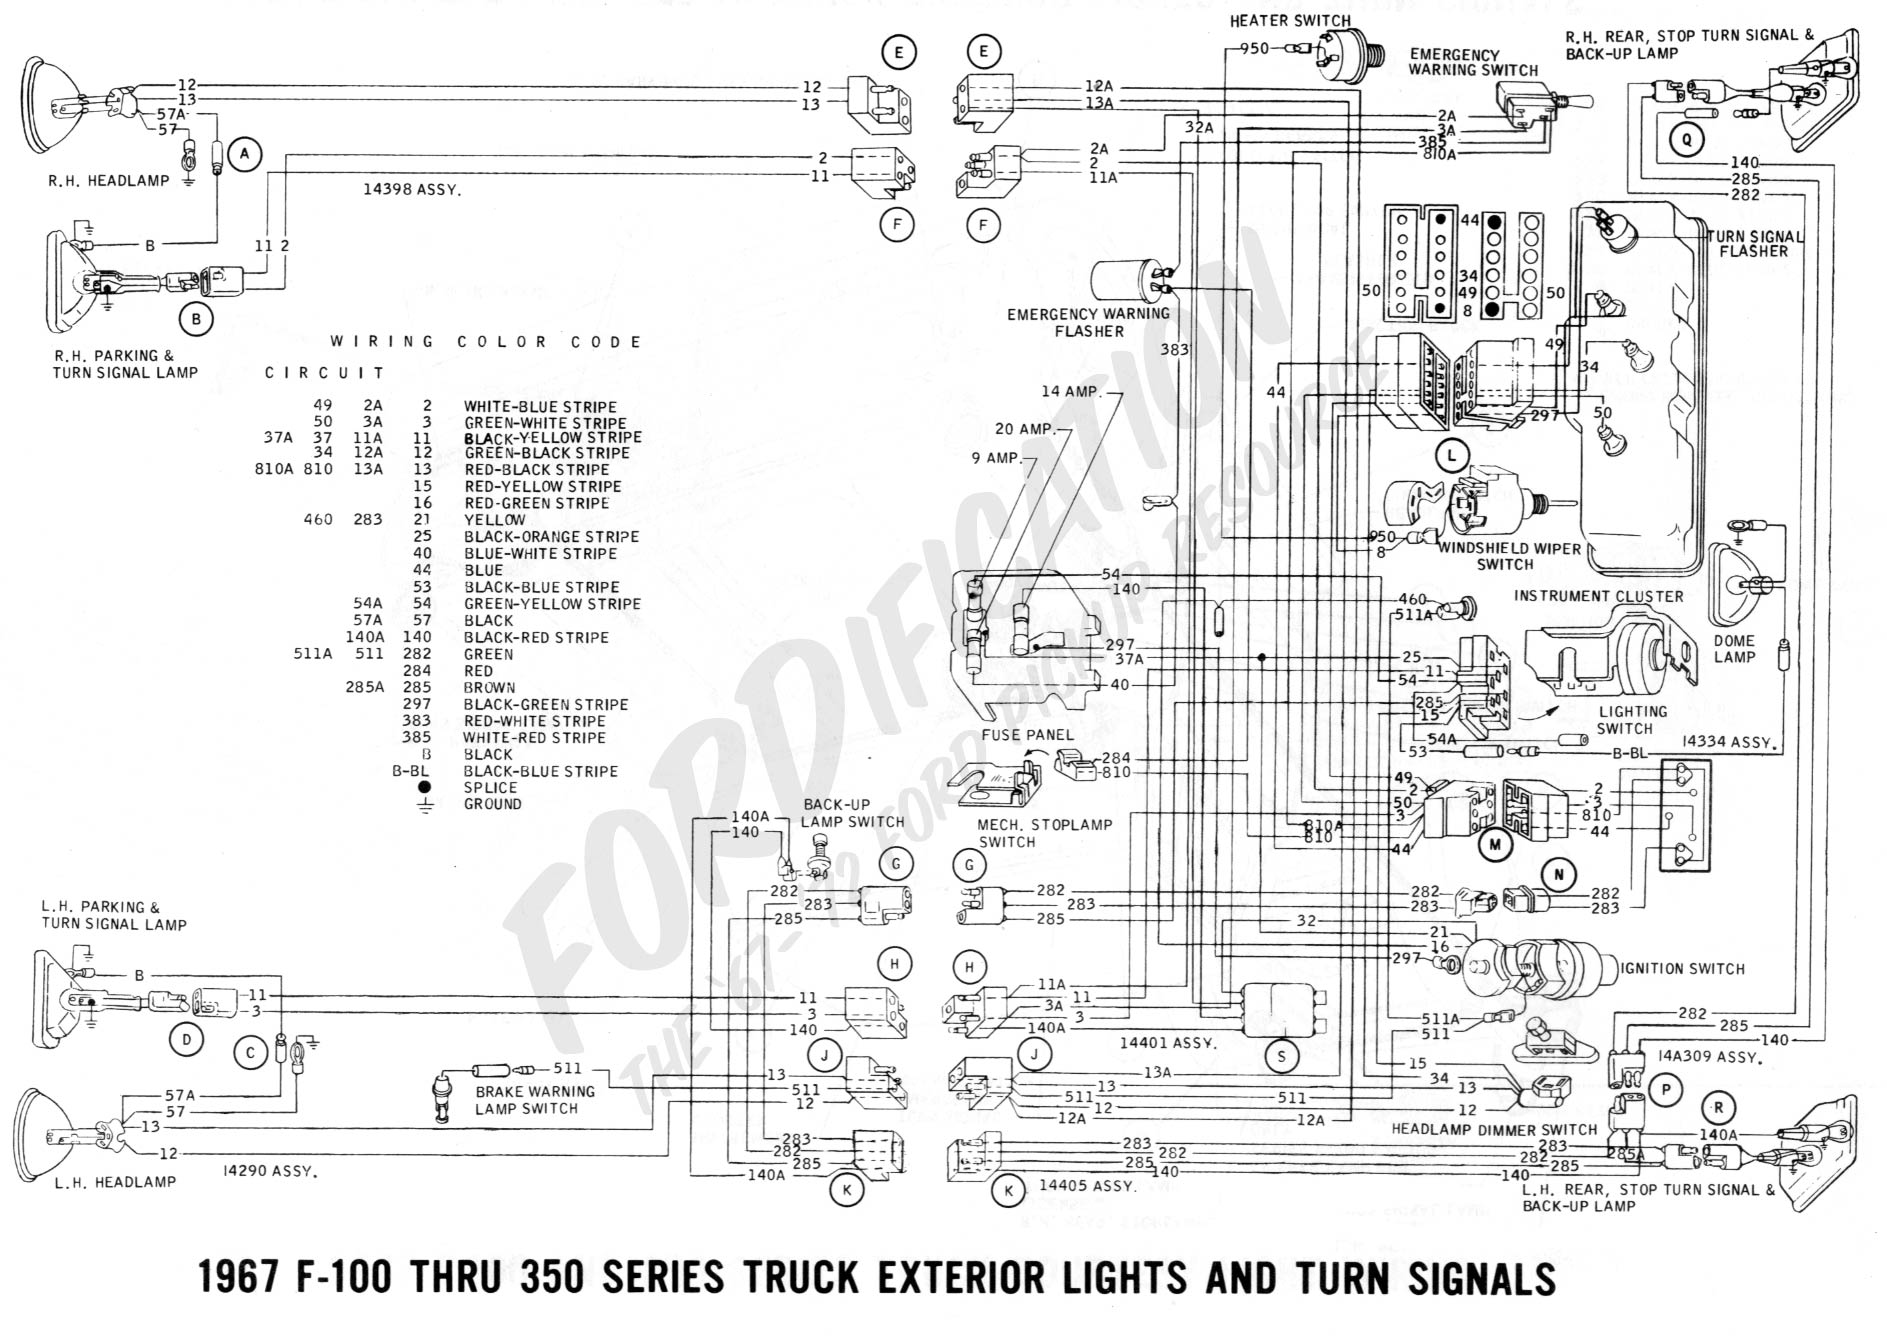 Ford truck technical drawings and schematics section h wiring 1967 f 100 thru f 350 exterior lights and turn signals 02 asfbconference2016